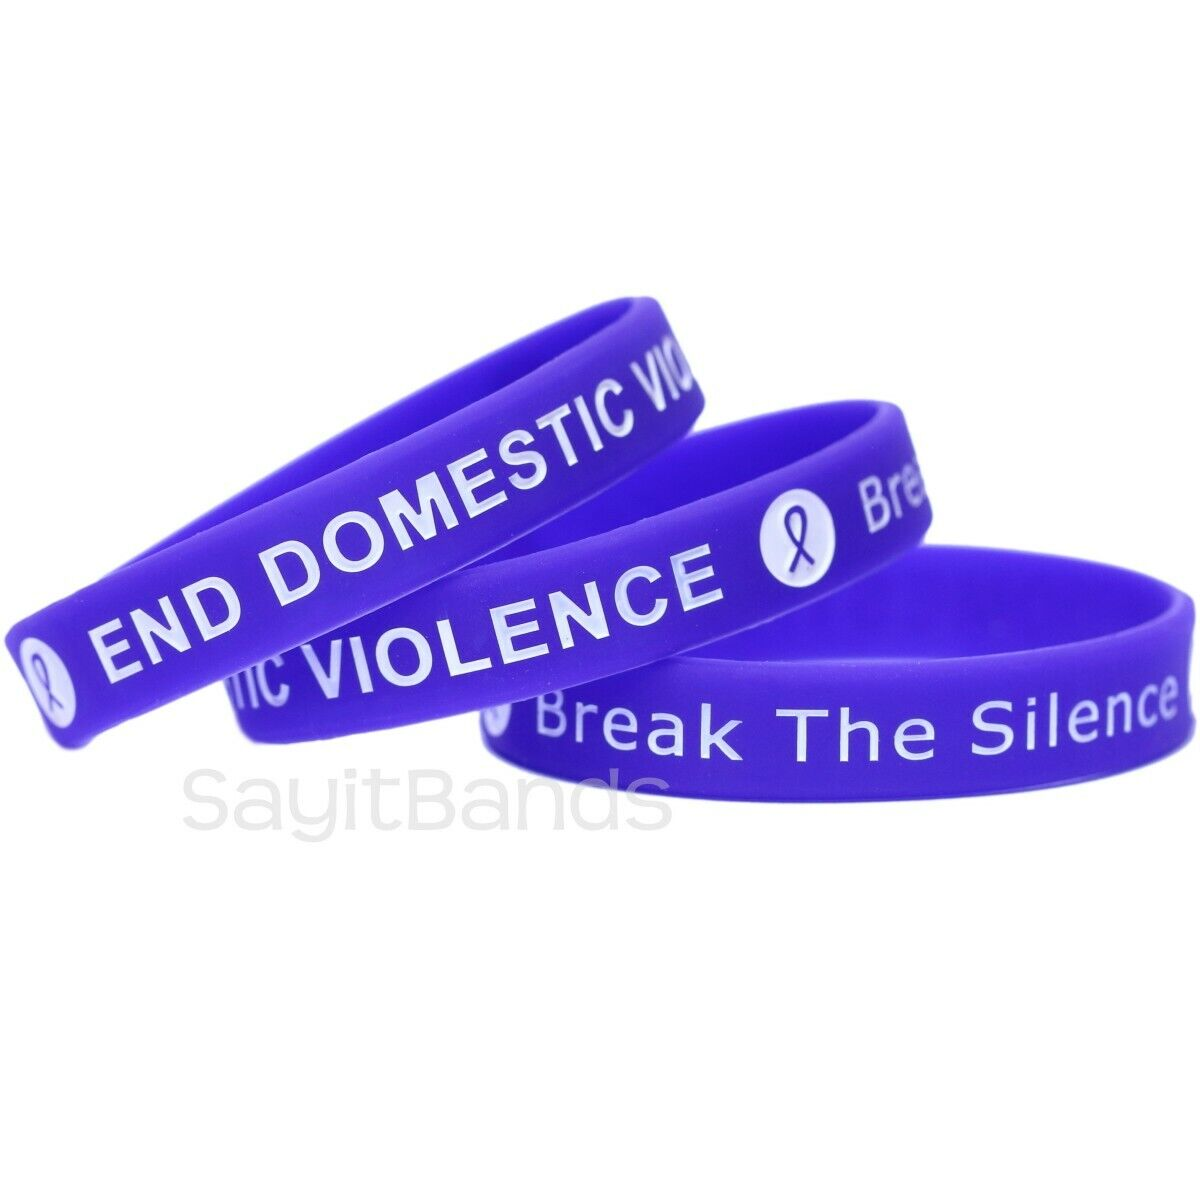 5 End Domestic Violence Bracelets - Debossed Silicone Awareness Wristbands - $8.88